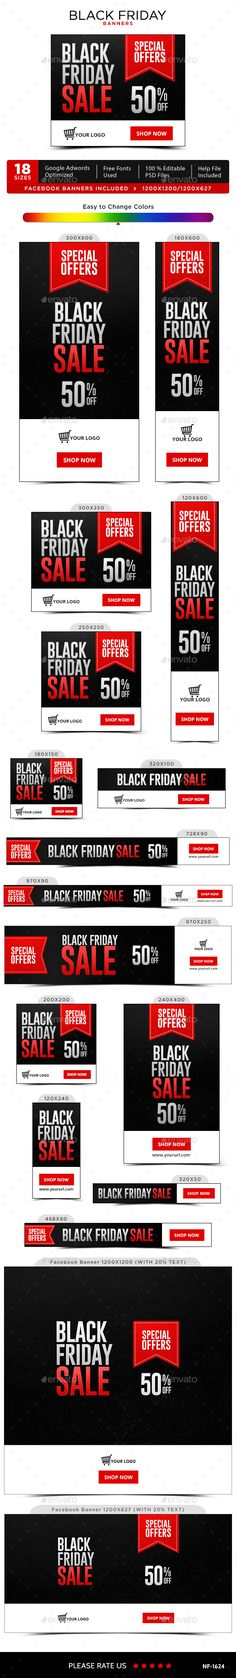 Black Friday Banners - #Banners & #Ads #Web Elements Download here: https://graphicriver.net/item/black-friday-banners/18777761?ref=alena994